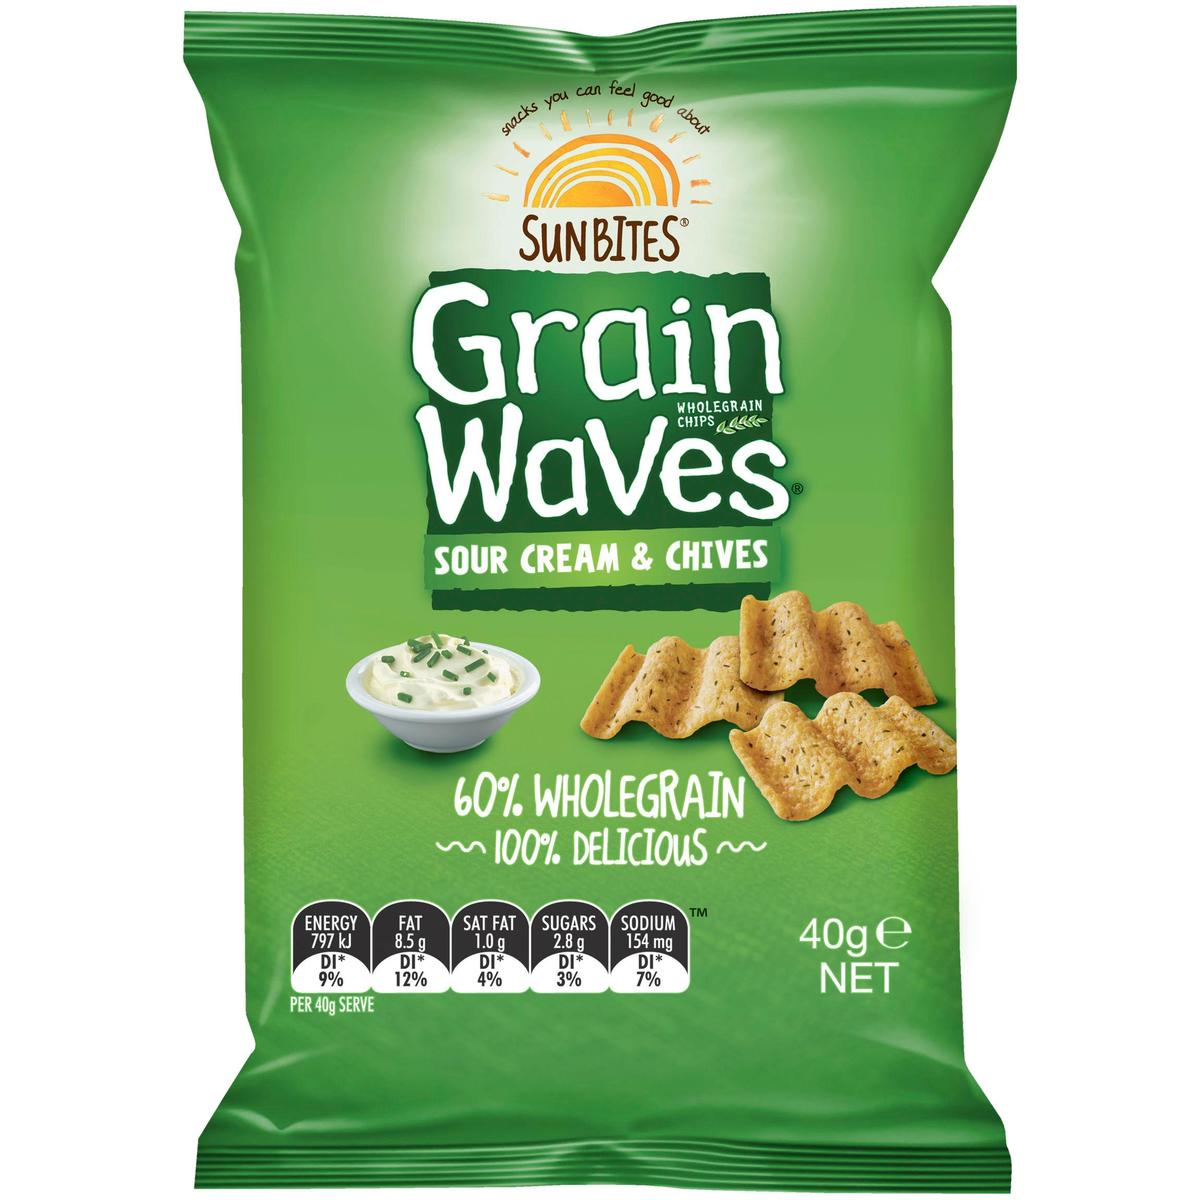 Sunbites grain waves